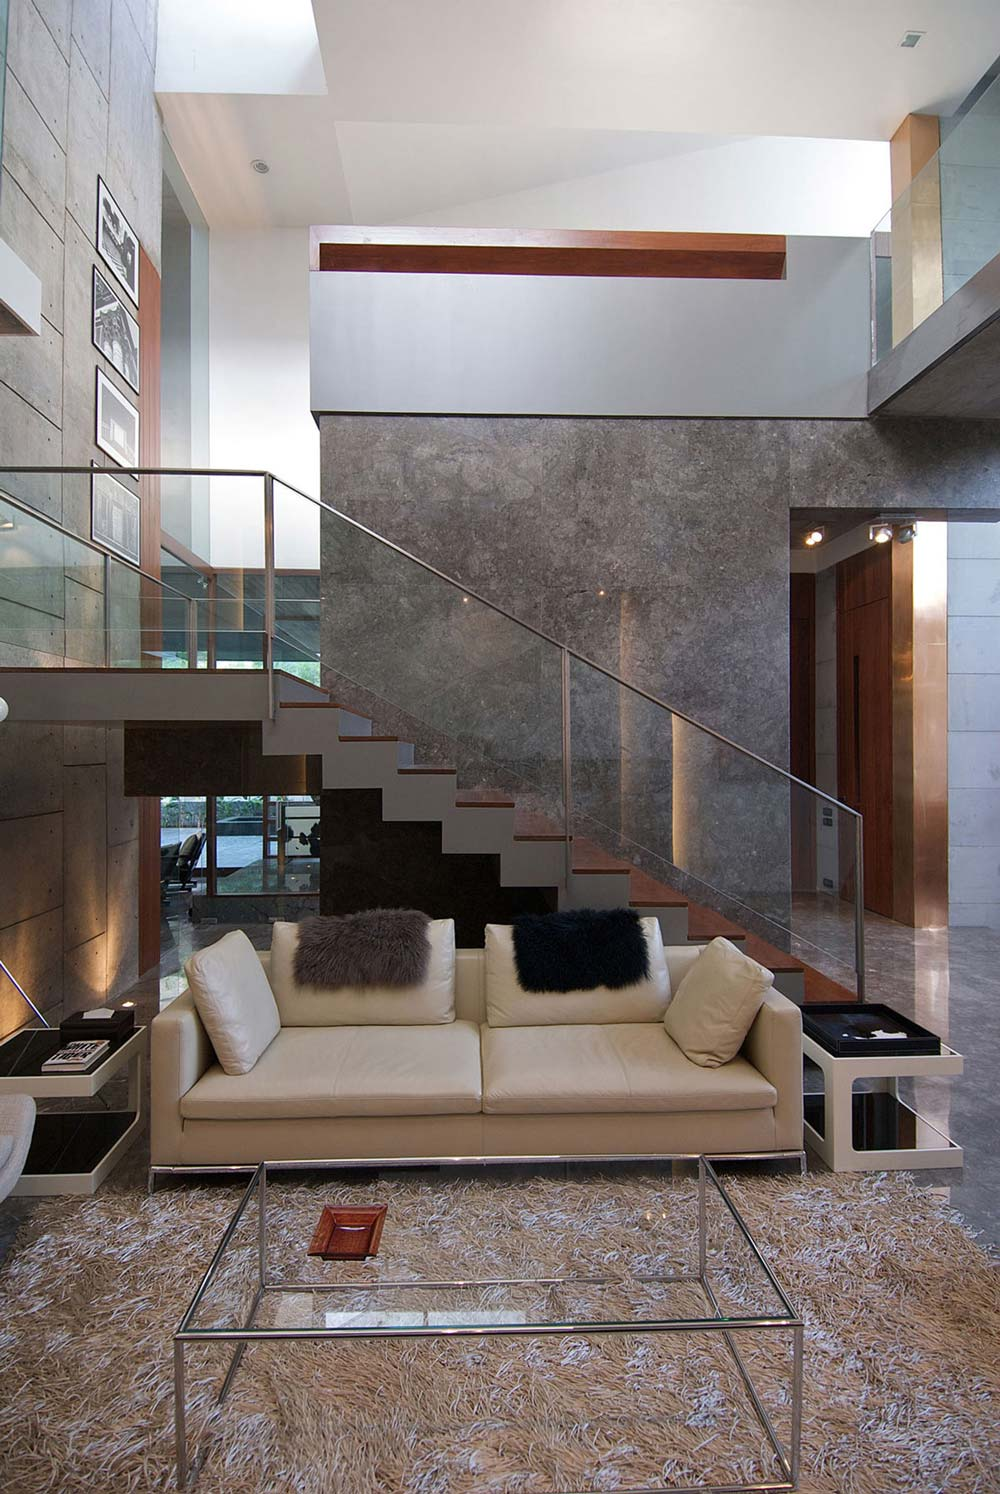 Marble Walls, Stairs, Poona House in Mumbai, India by Rajiv Saini